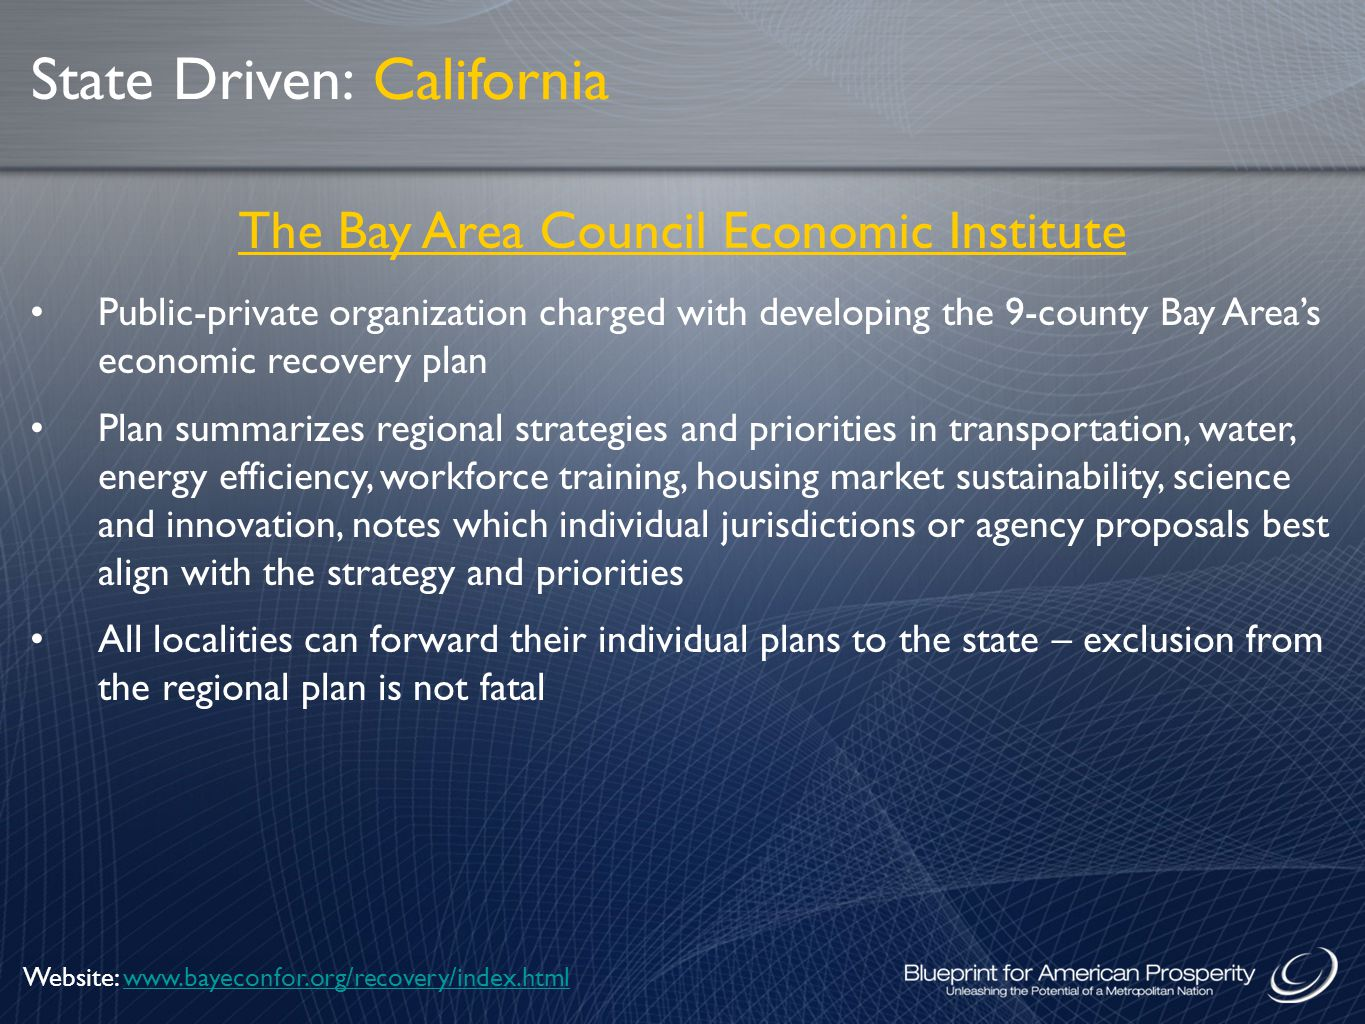 The Bay Area Council Economic Institute Public-private organization charged with developing the 9-county Bay Area's economic recovery plan Plan summarizes regional strategies and priorities in transportation, water, energy efficiency, workforce training, housing market sustainability, science and innovation, notes which individual jurisdictions or agency proposals best align with the strategy and priorities All localities can forward their individual plans to the state – exclusion from the regional plan is not fatal State Driven: California Website: www.bayeconfor.org/recovery/index.htmlwww.bayeconfor.org/recovery/index.html